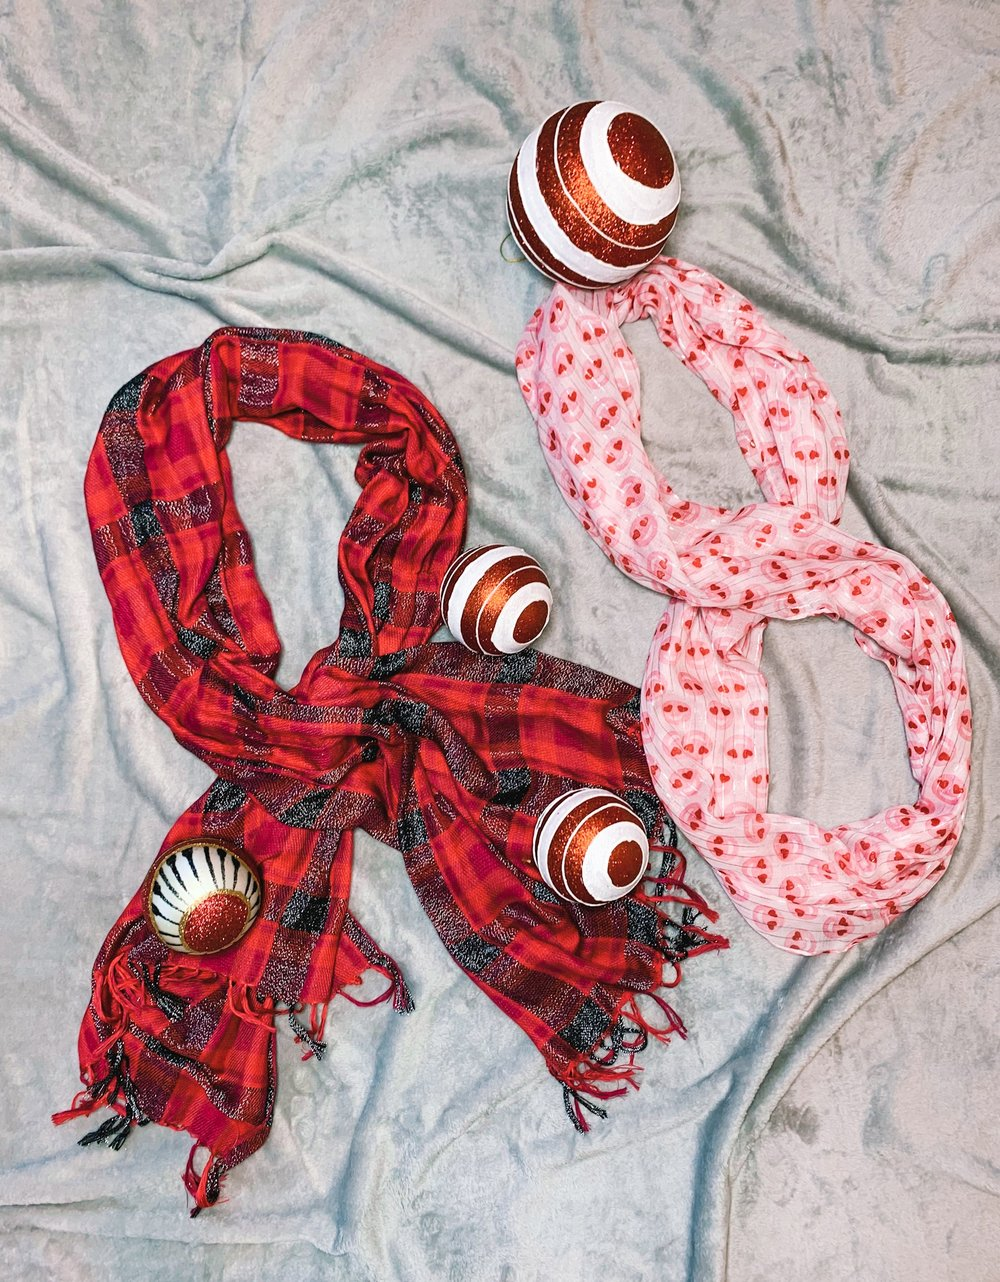 Themed - Plaid or valentine add a whimsy vibe